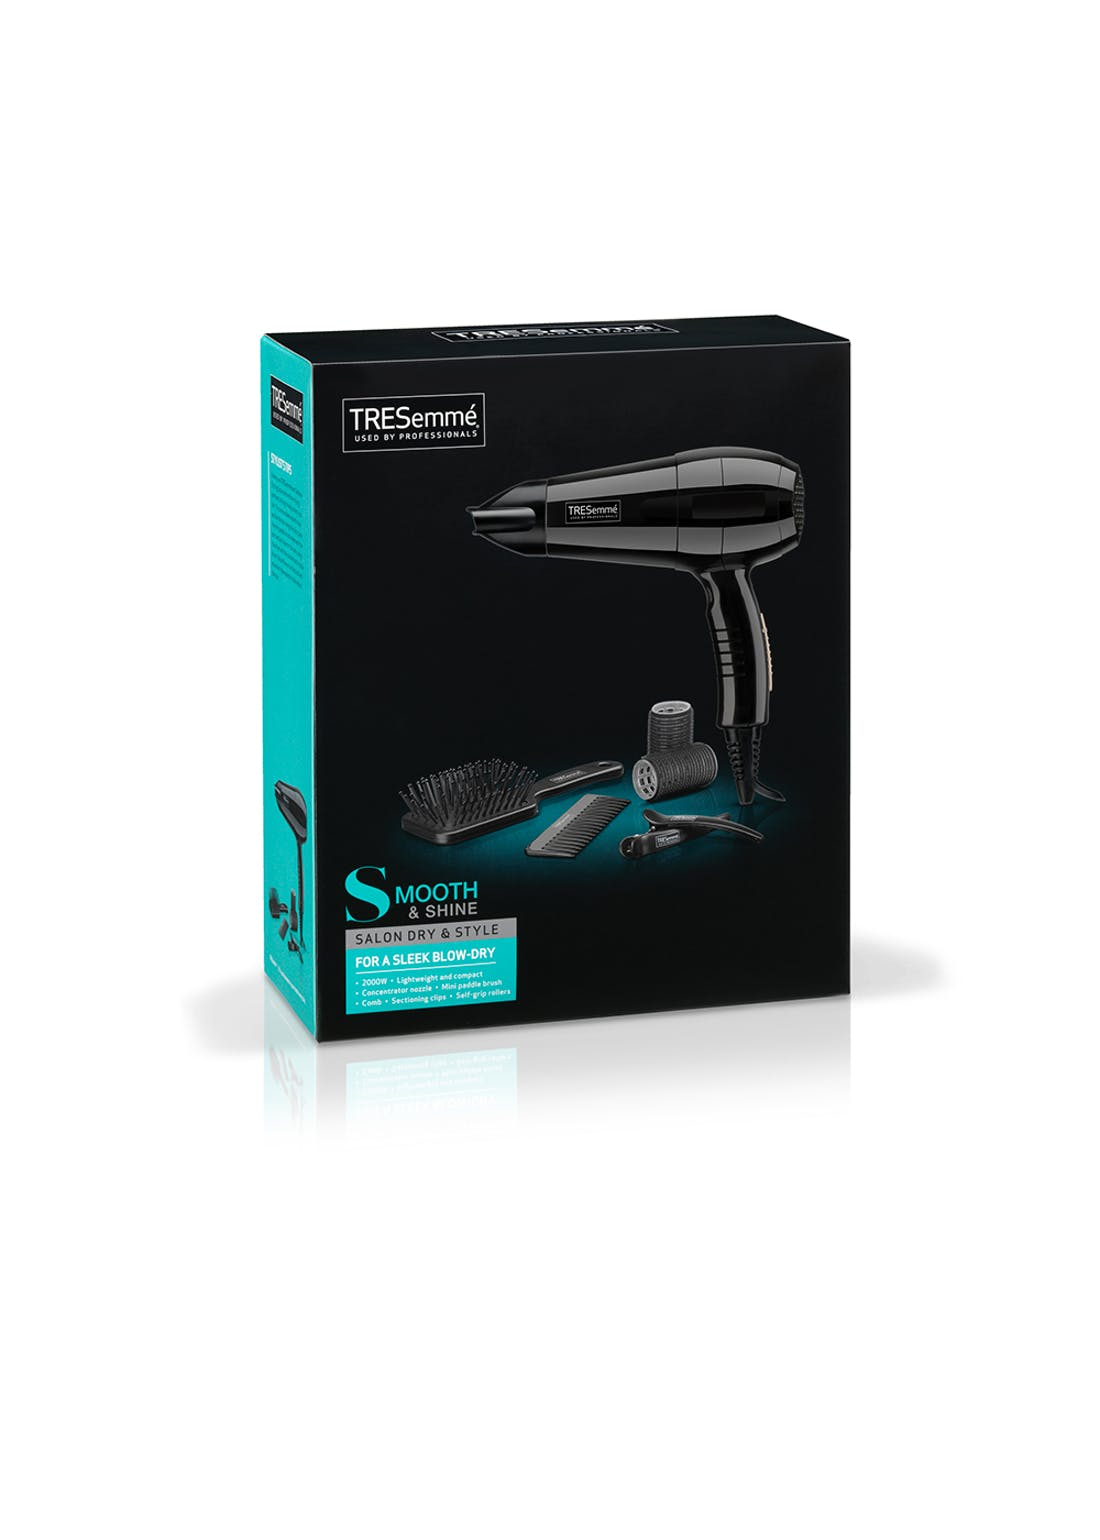 TREsemmé Smooth & Shine Hairdryer Set